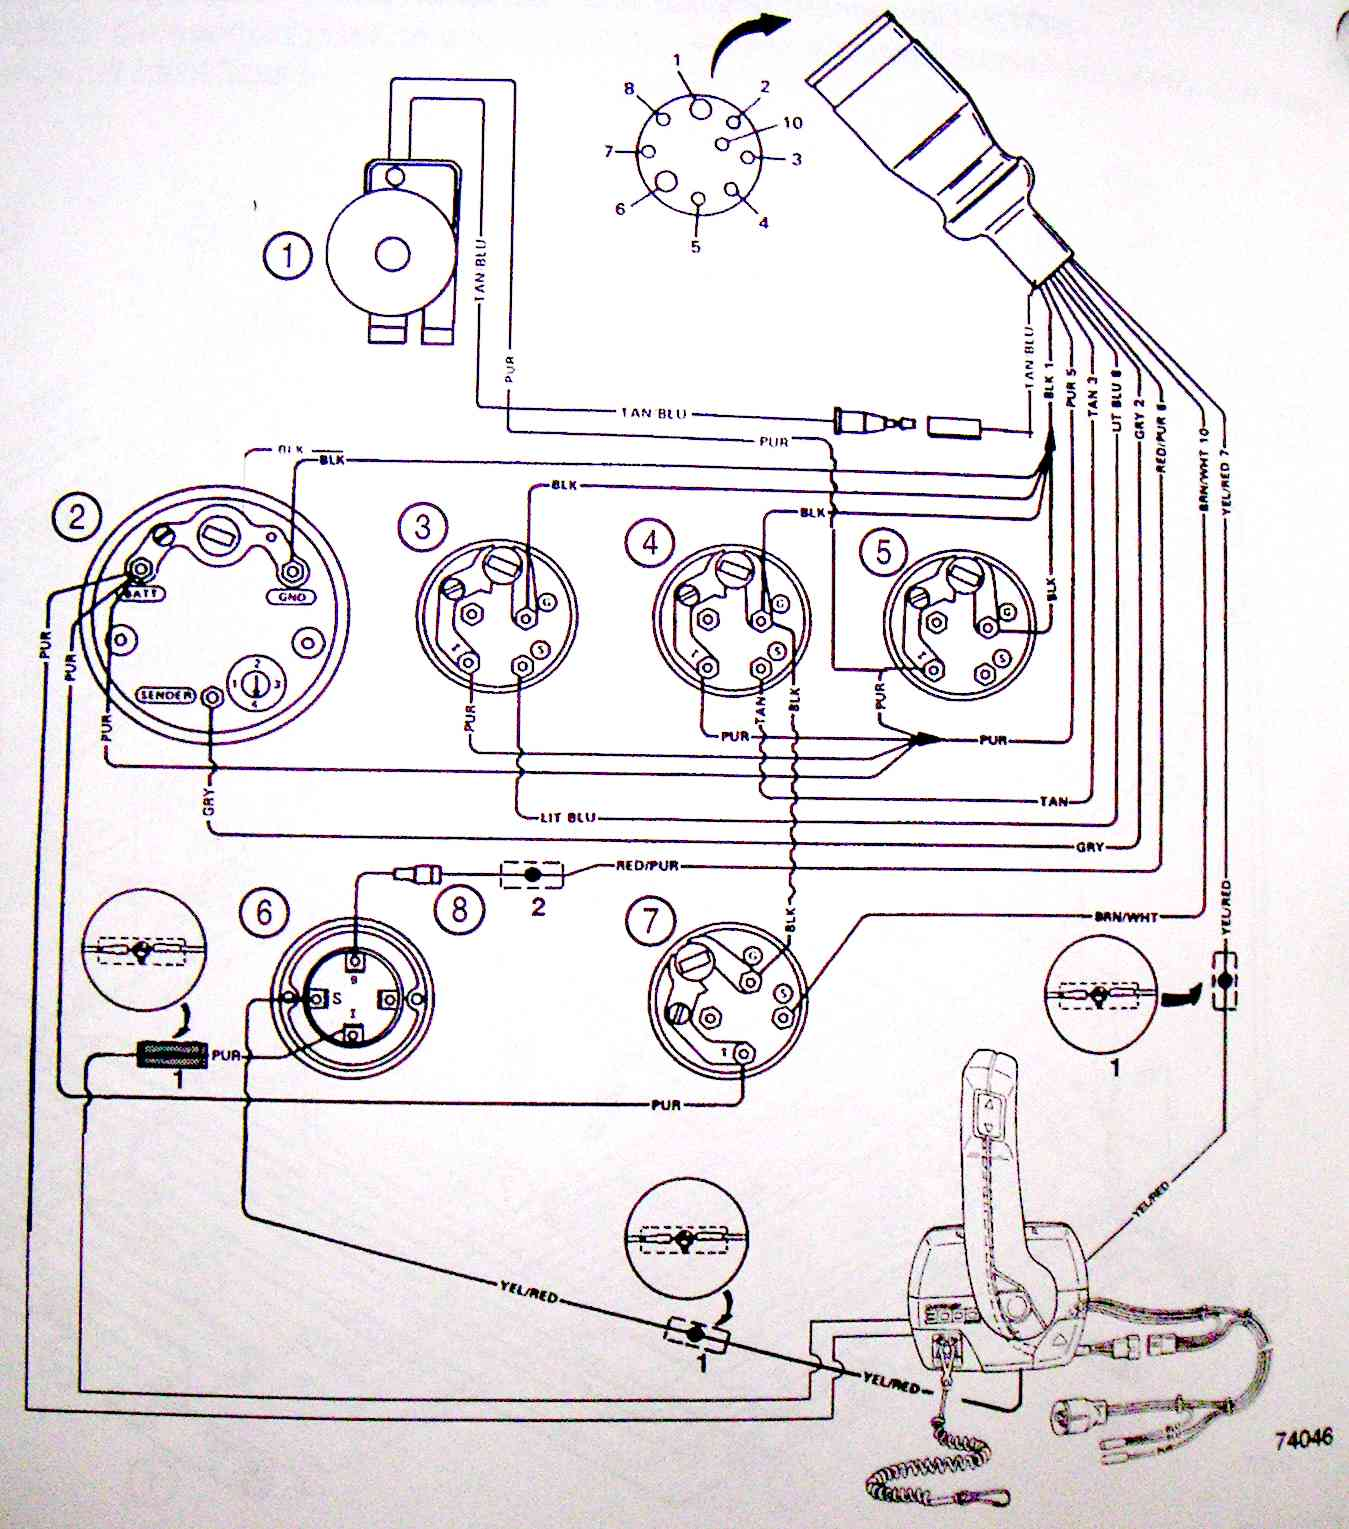 mercruiser trim sender wiring diagram mercruiser trim pump wiring diagram wiring diagram and schematic i have a mercruiser 898r from 1983